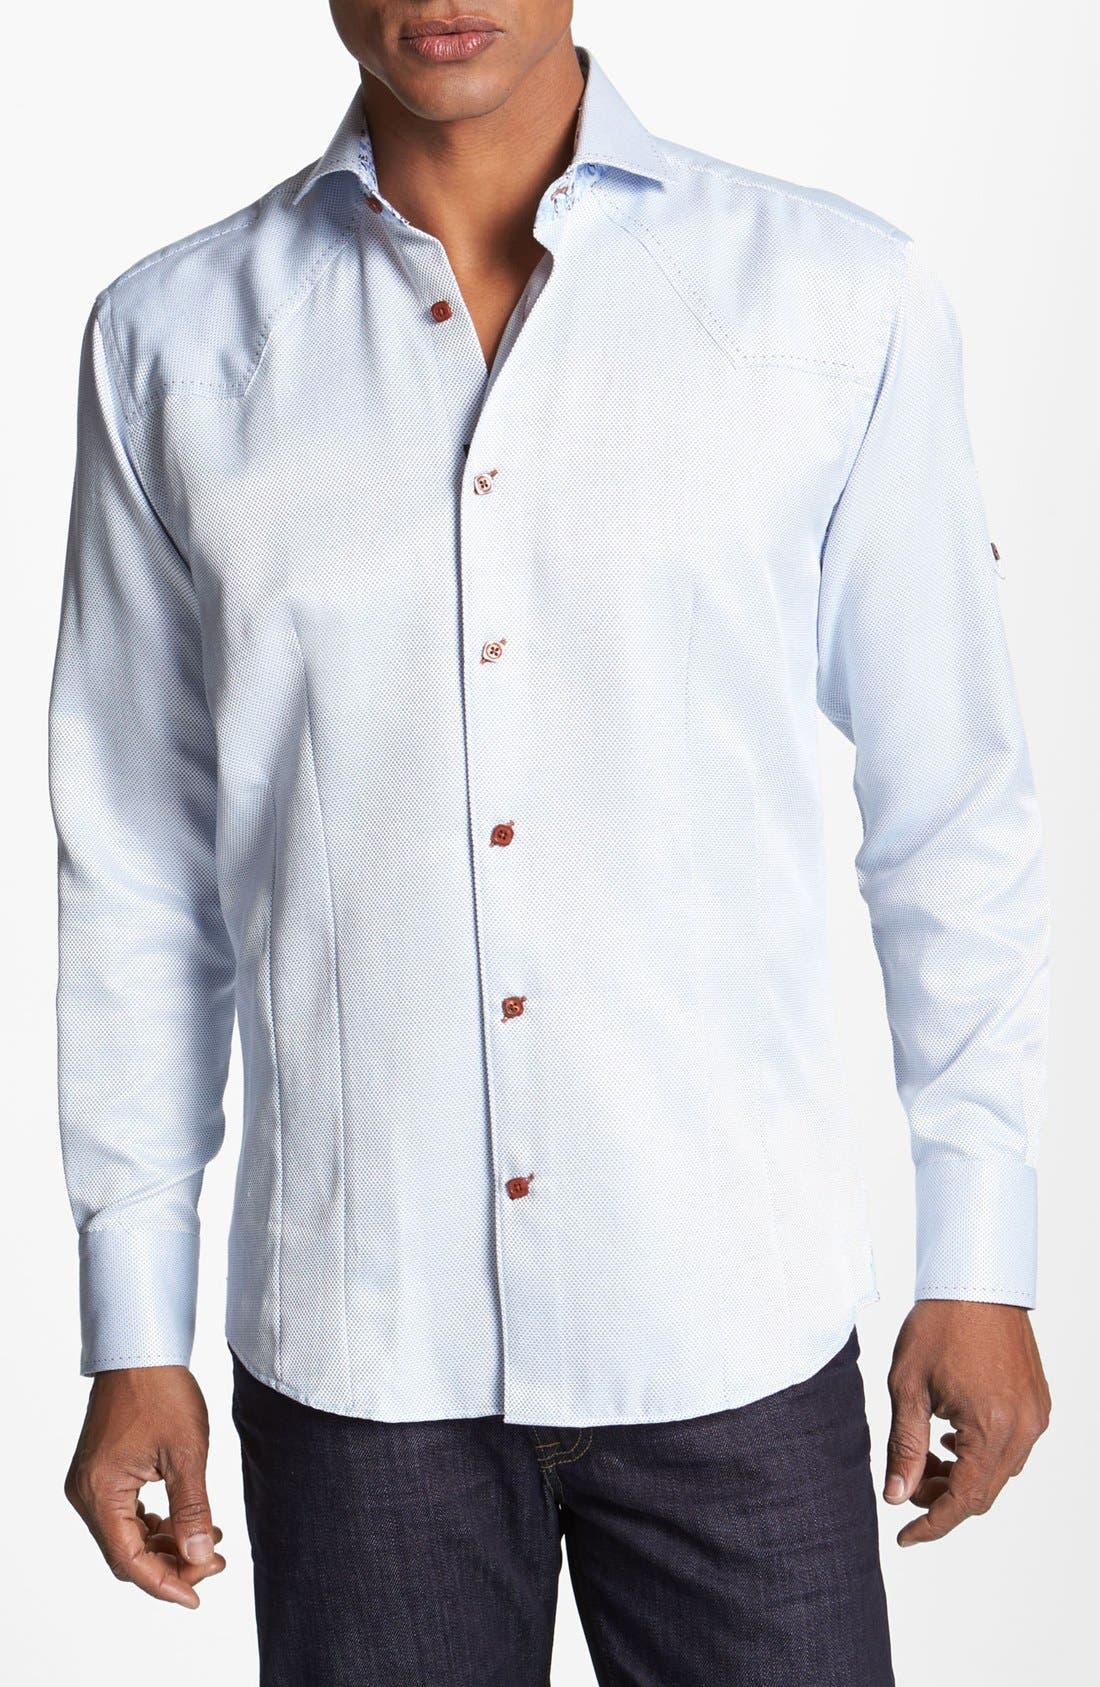 Main Image - Bogosse 'Matt' Trim Fit Sport Shirt